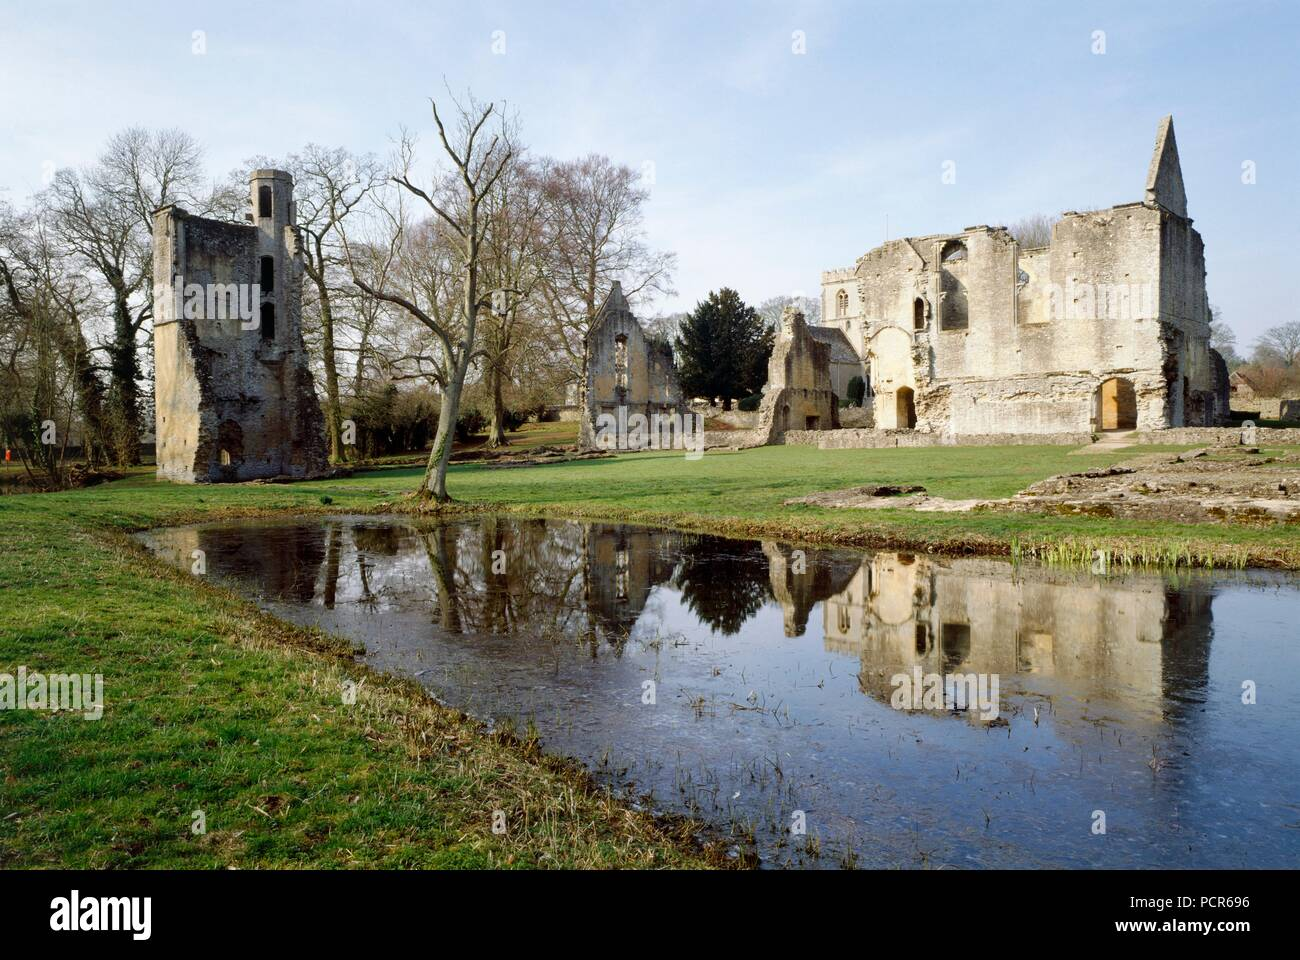 Minster Lovell Hall, Oxfordshire, c1980-c2017. View from the south-east. Formerly one of the great aristocratic houses of the county, the house was built c1431-1442 by the 7th Lord Lovell, but was dismantled in the 18th century and used as farm buildings. - Stock Image